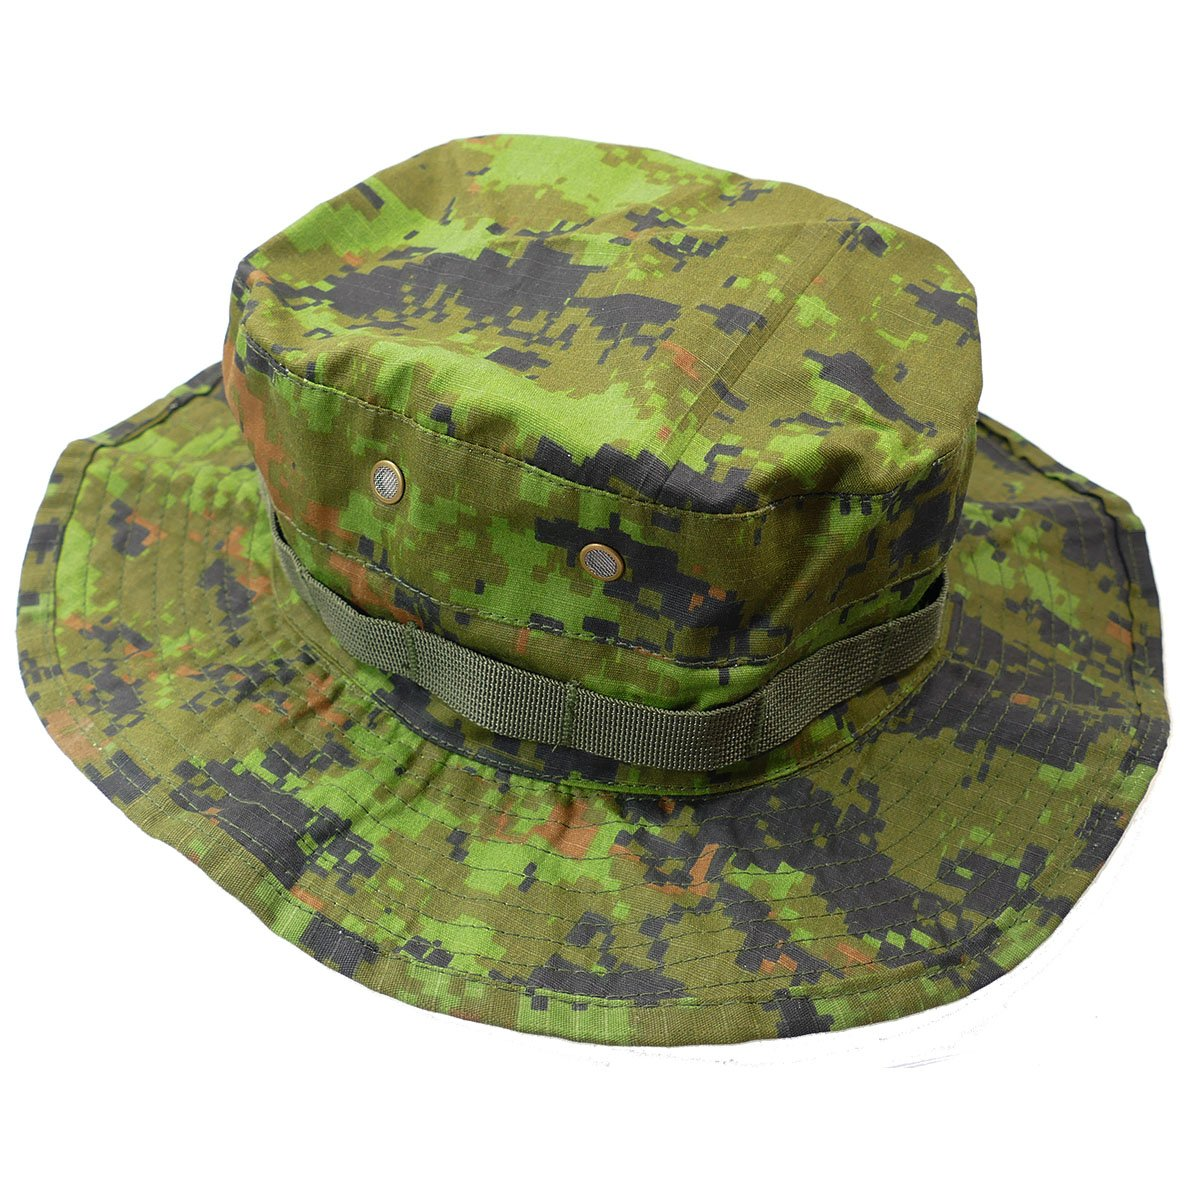 INVADER GEAR CADPAT BOONIE HAT CAMOFLAUGE BUSH STYLE CADPAT HAT